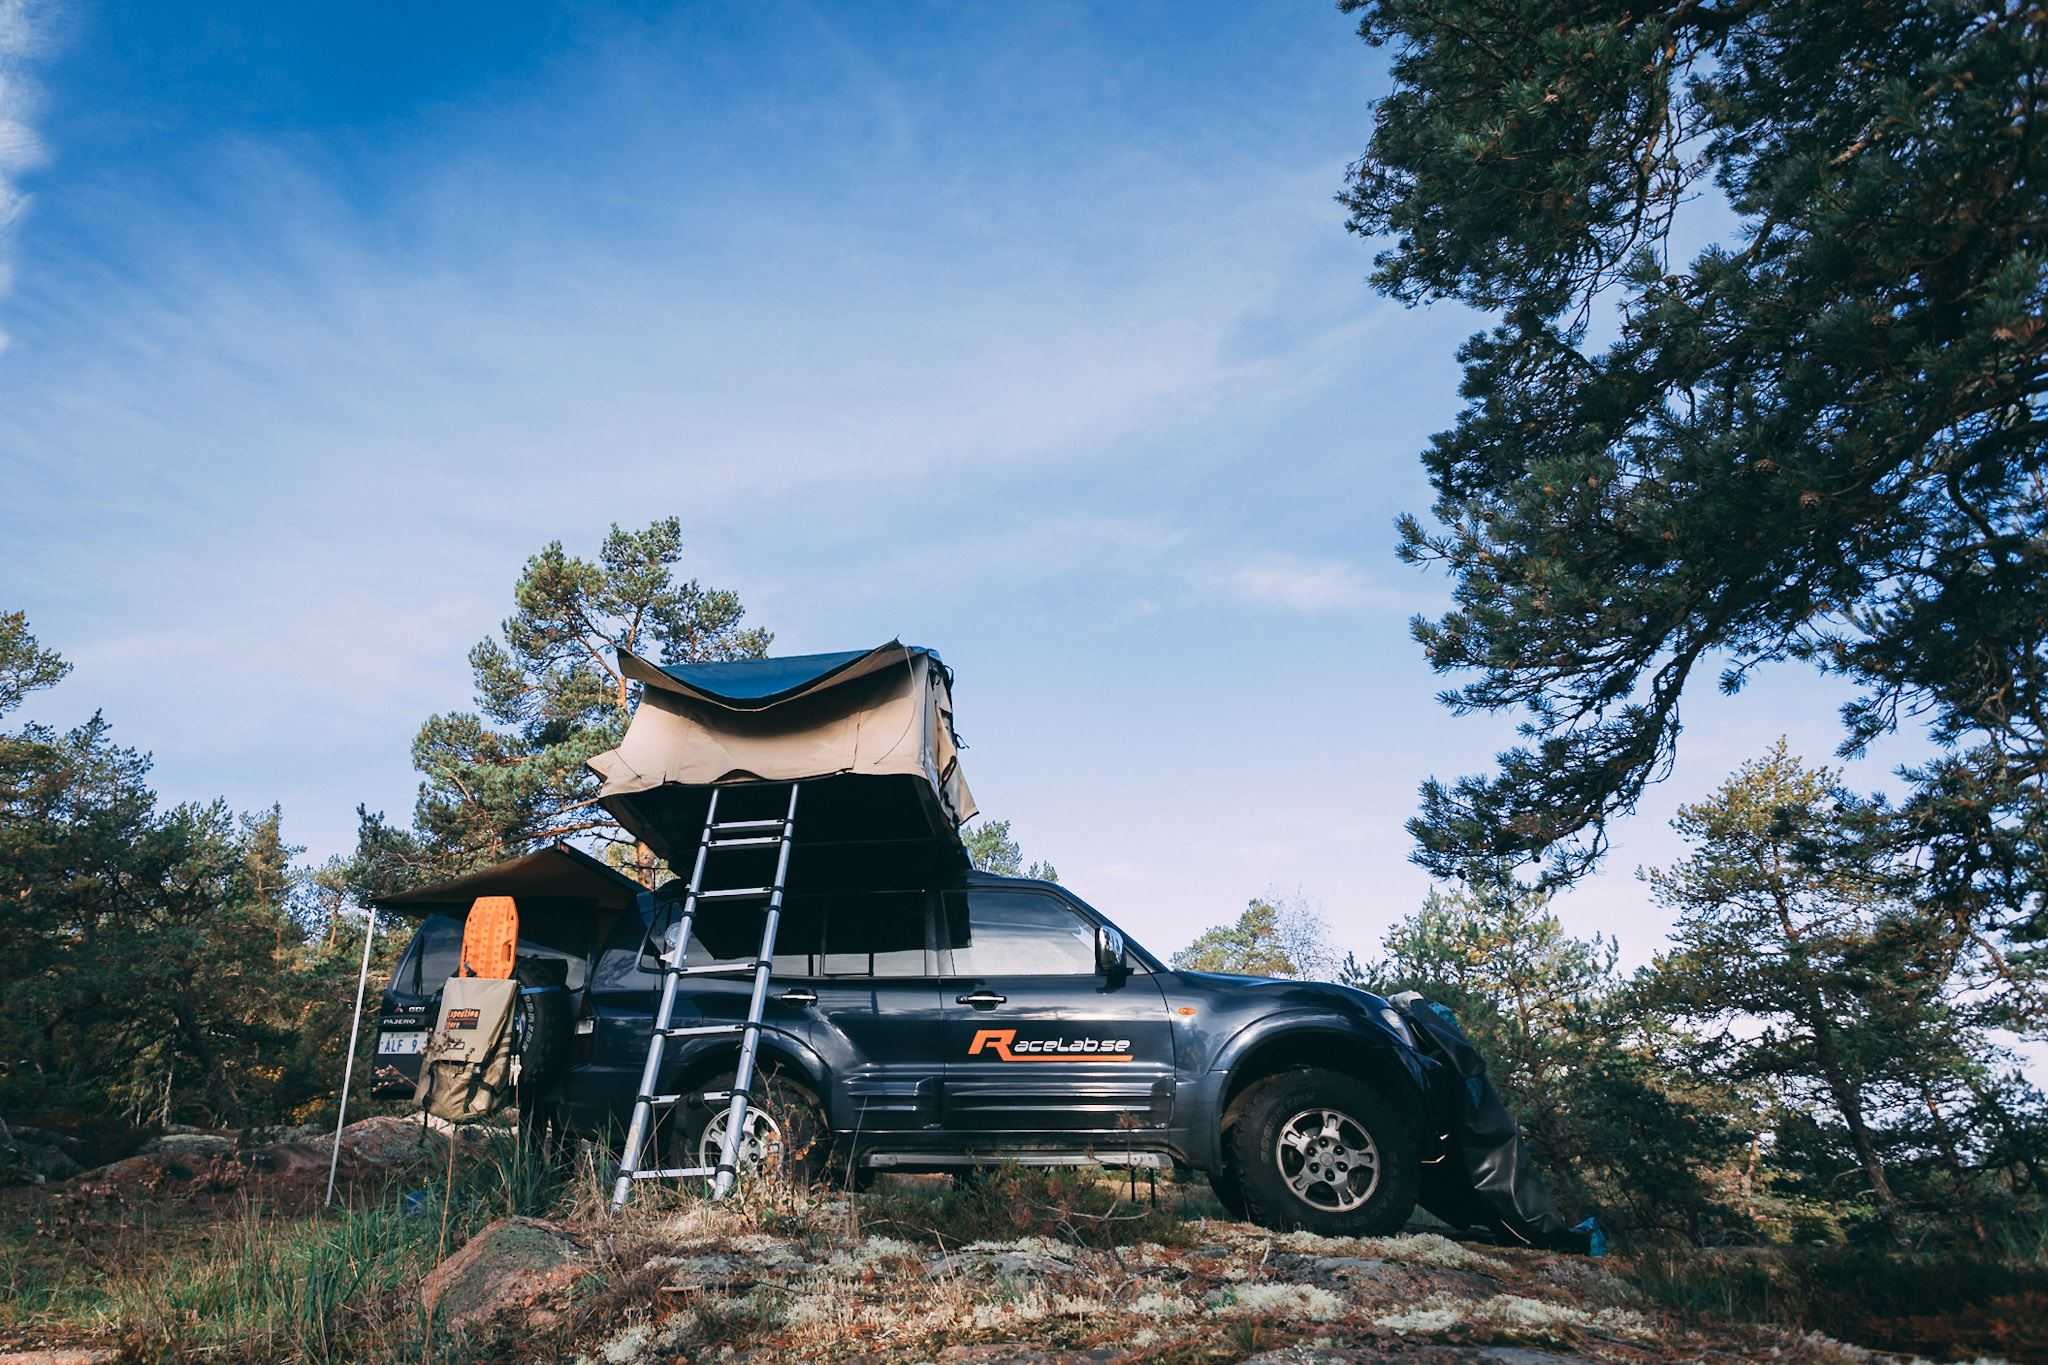 Overland weekend in Åland nature